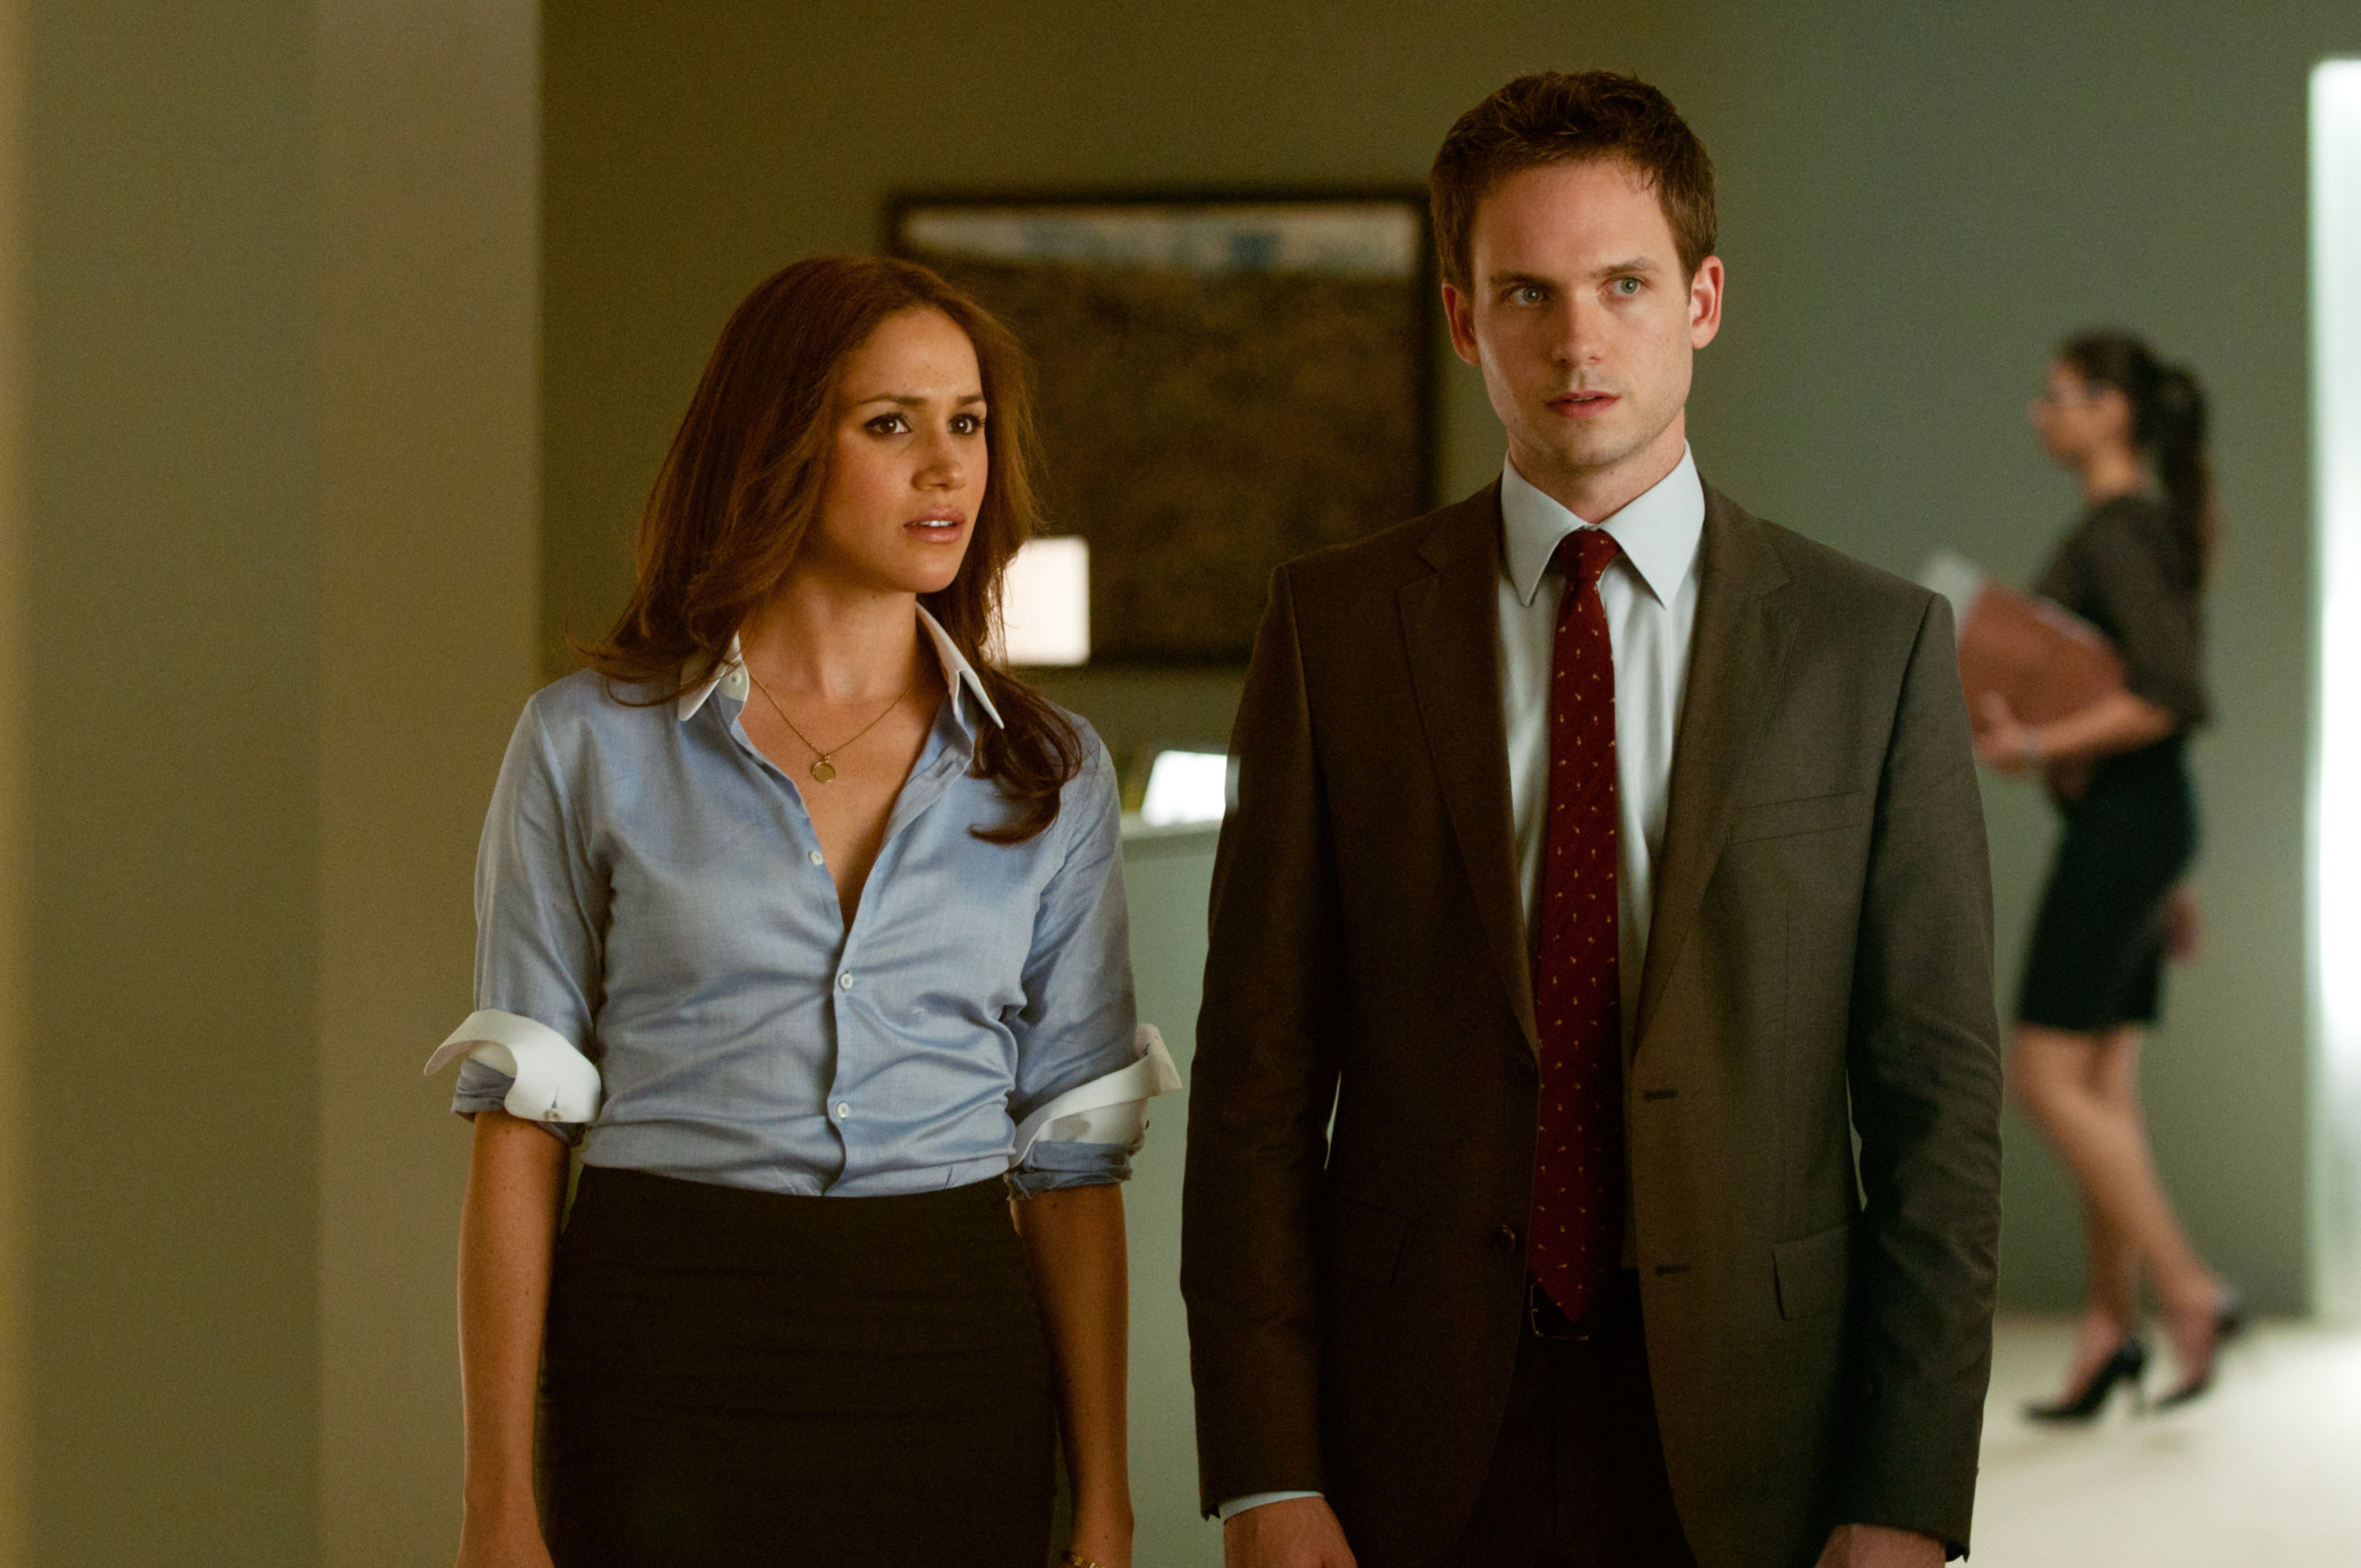 Meghan Markle and Patrick J. Adams stand in a hallway together